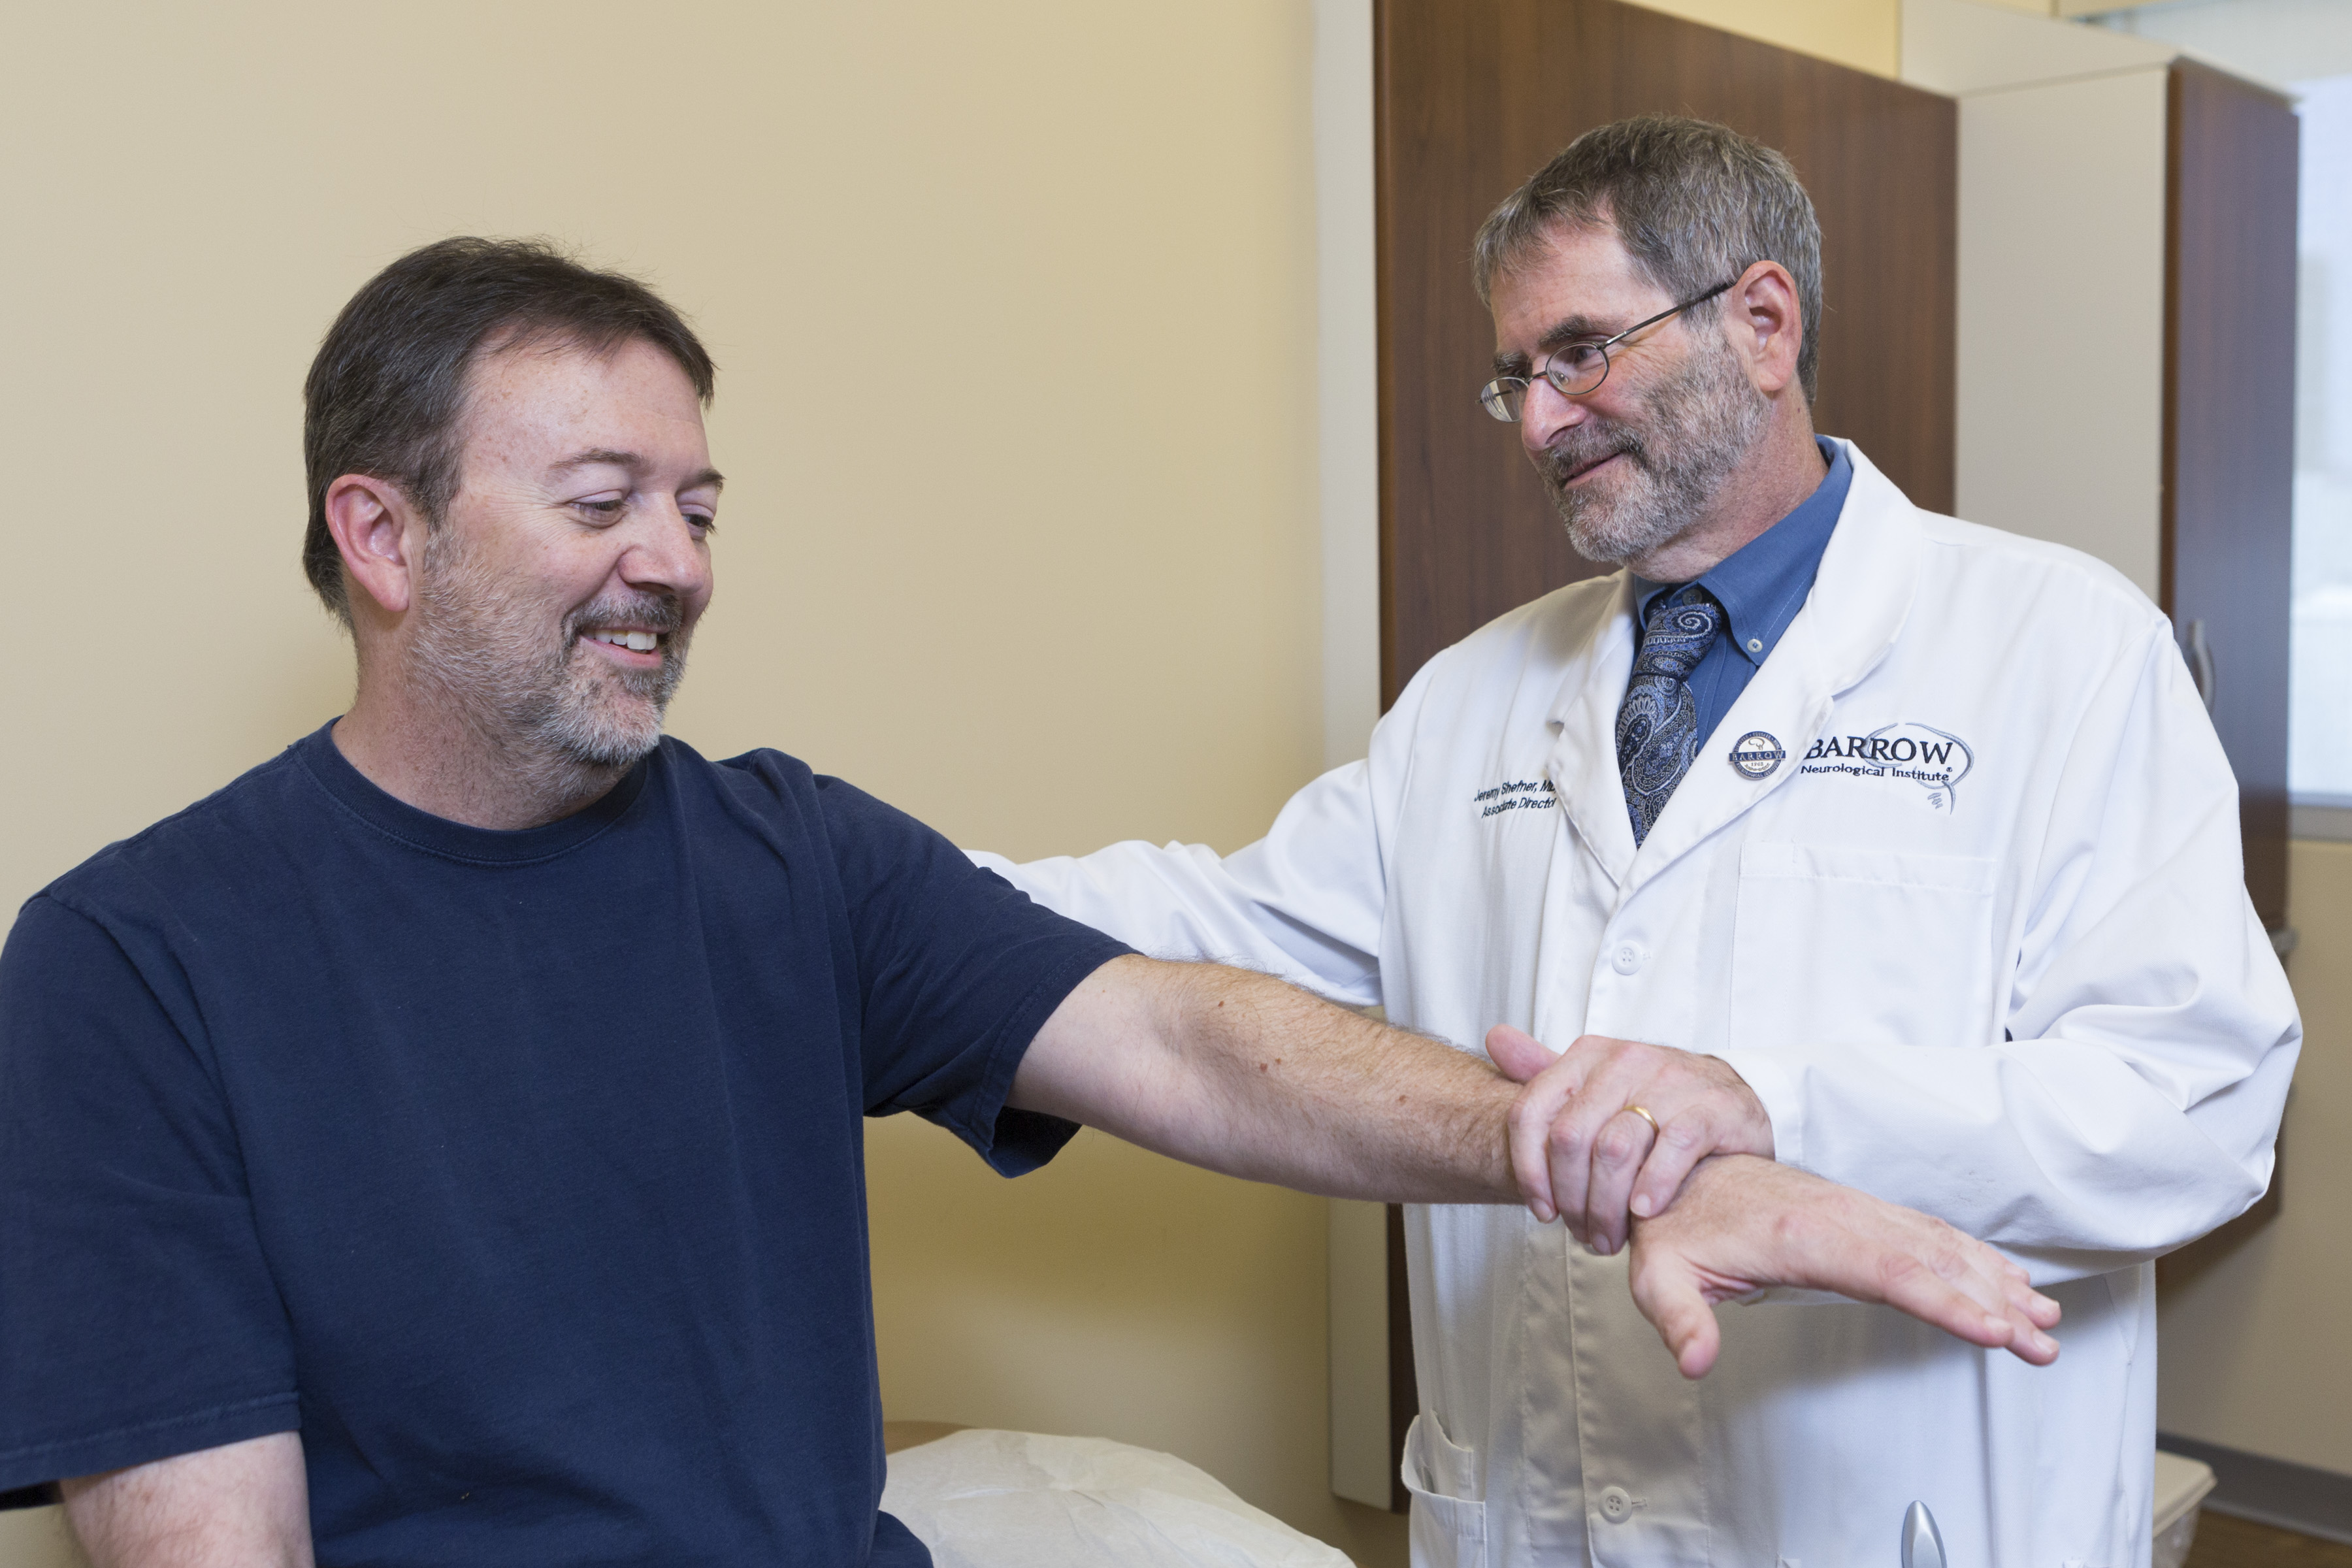 ALS patient at Barrow for appointment with Dr. Shefner